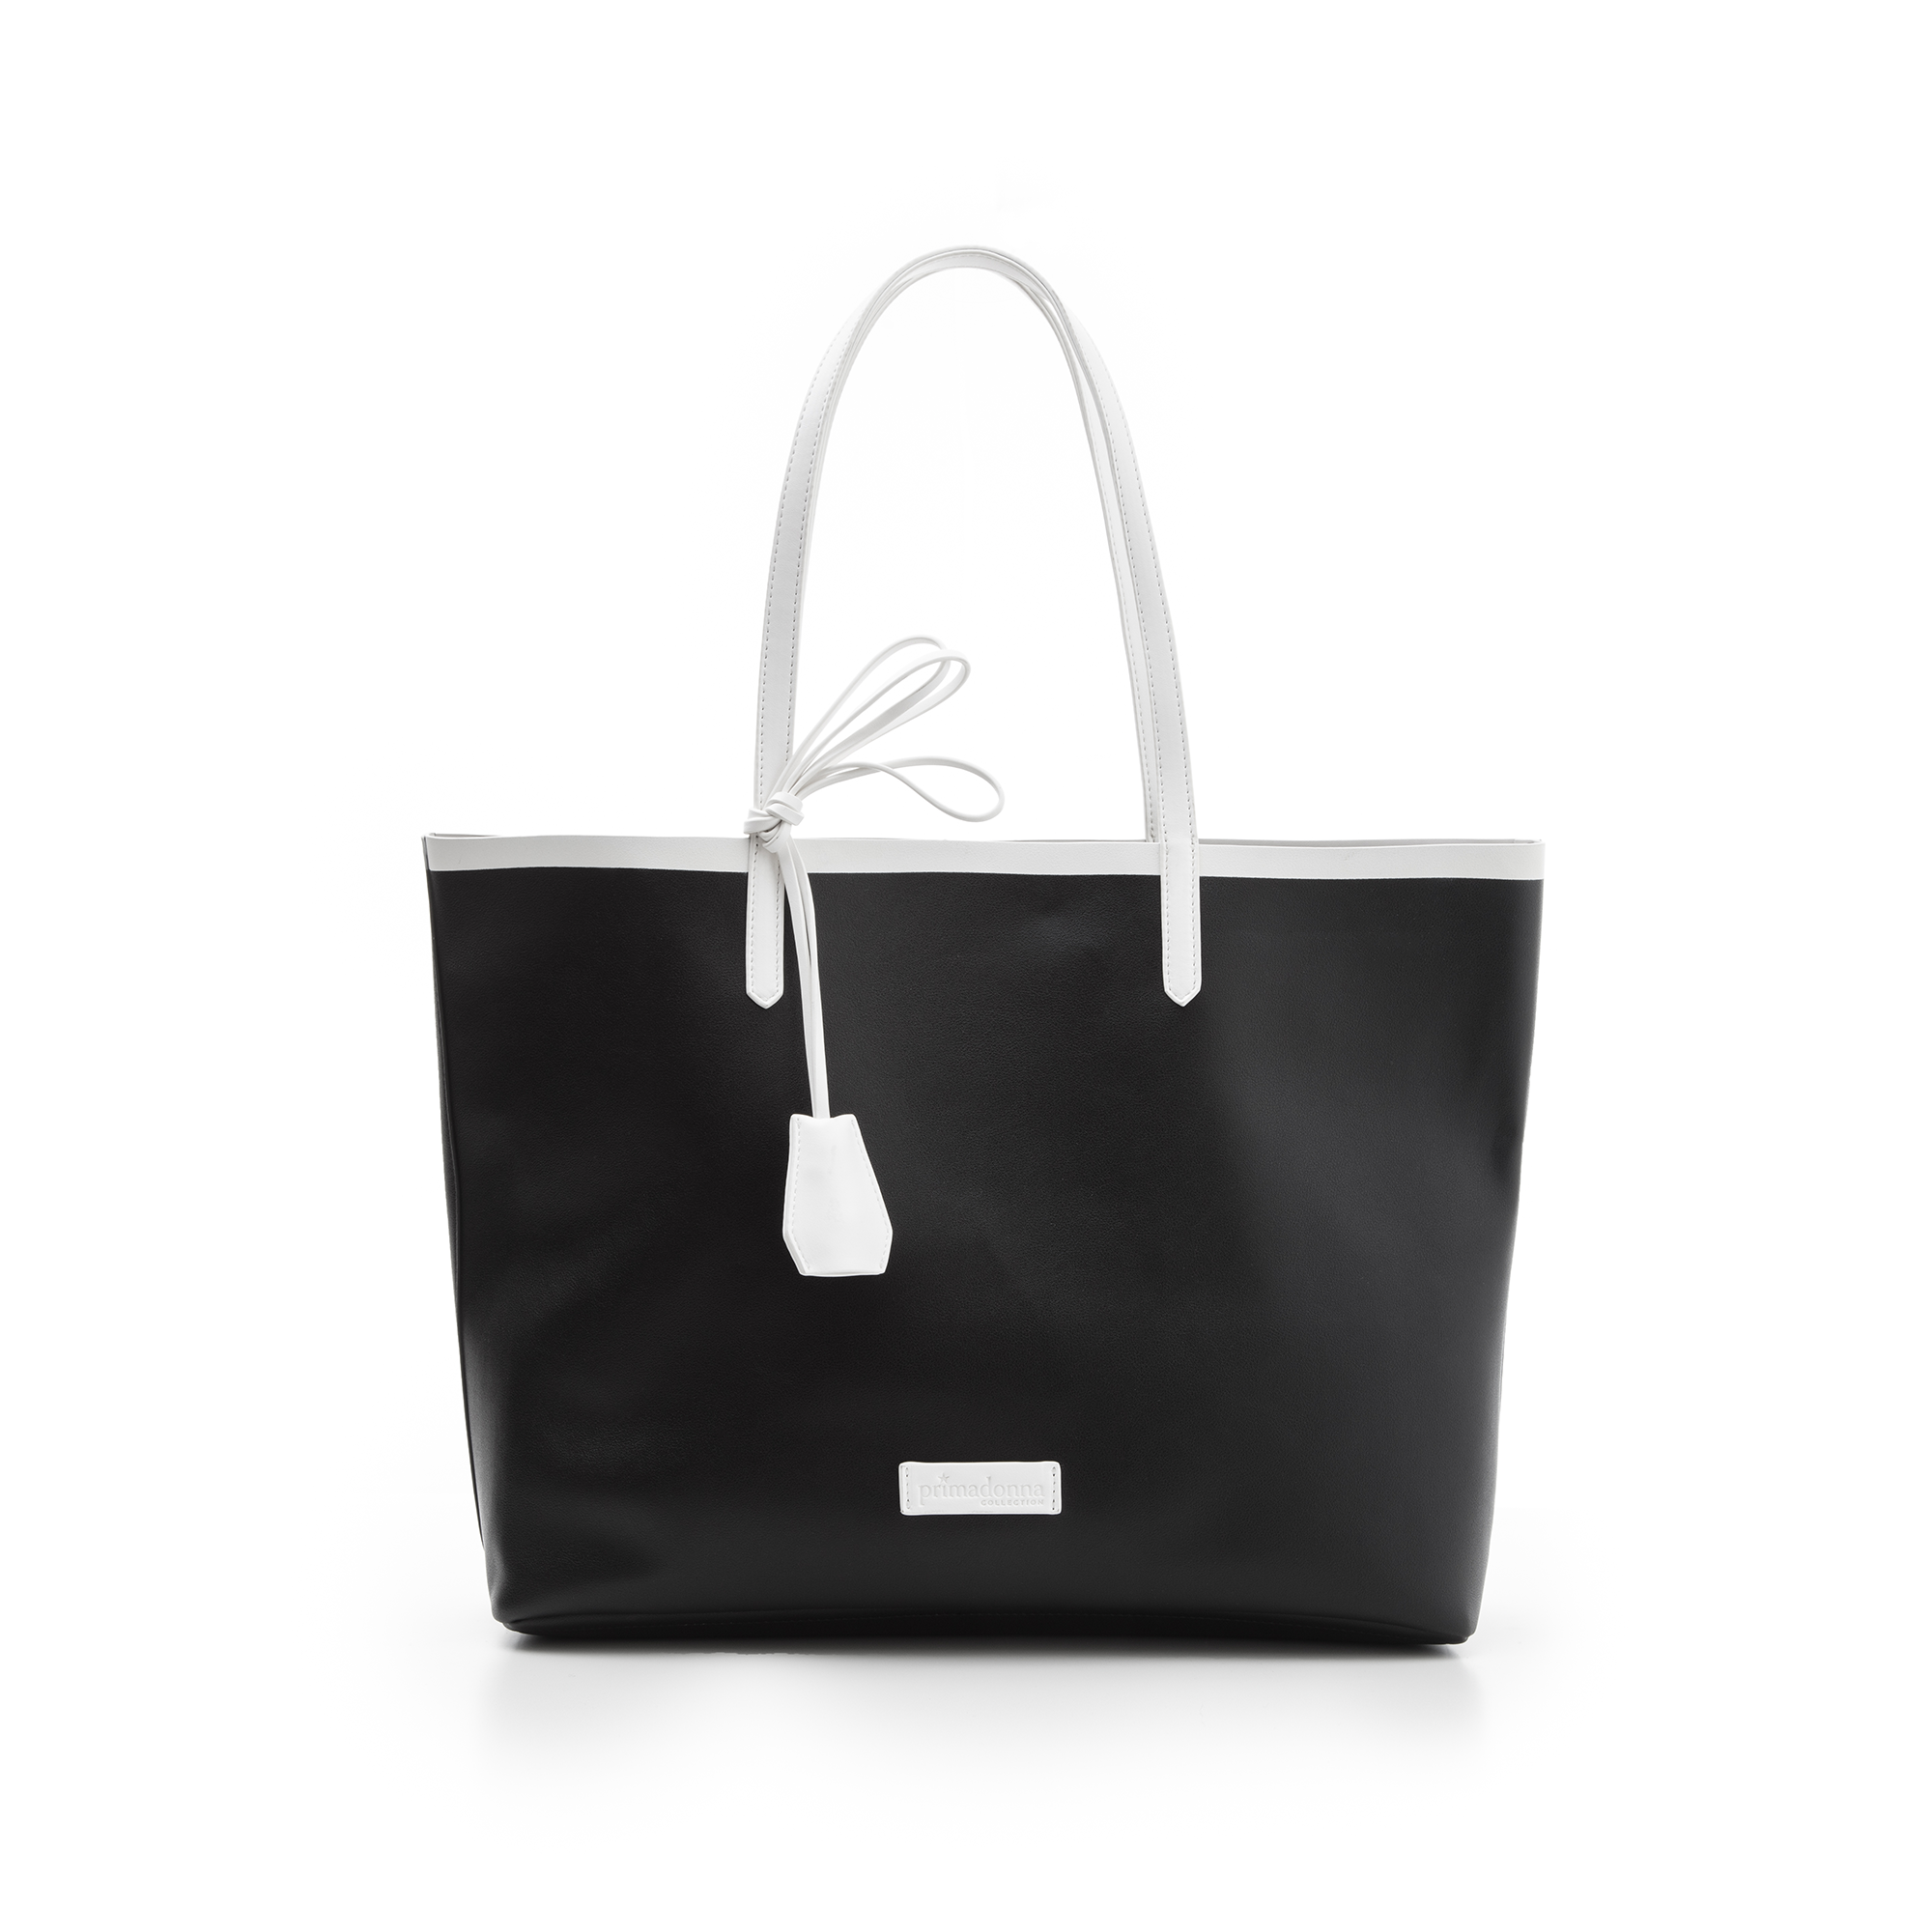 Maxi bag nero/bianca in eco-pelle